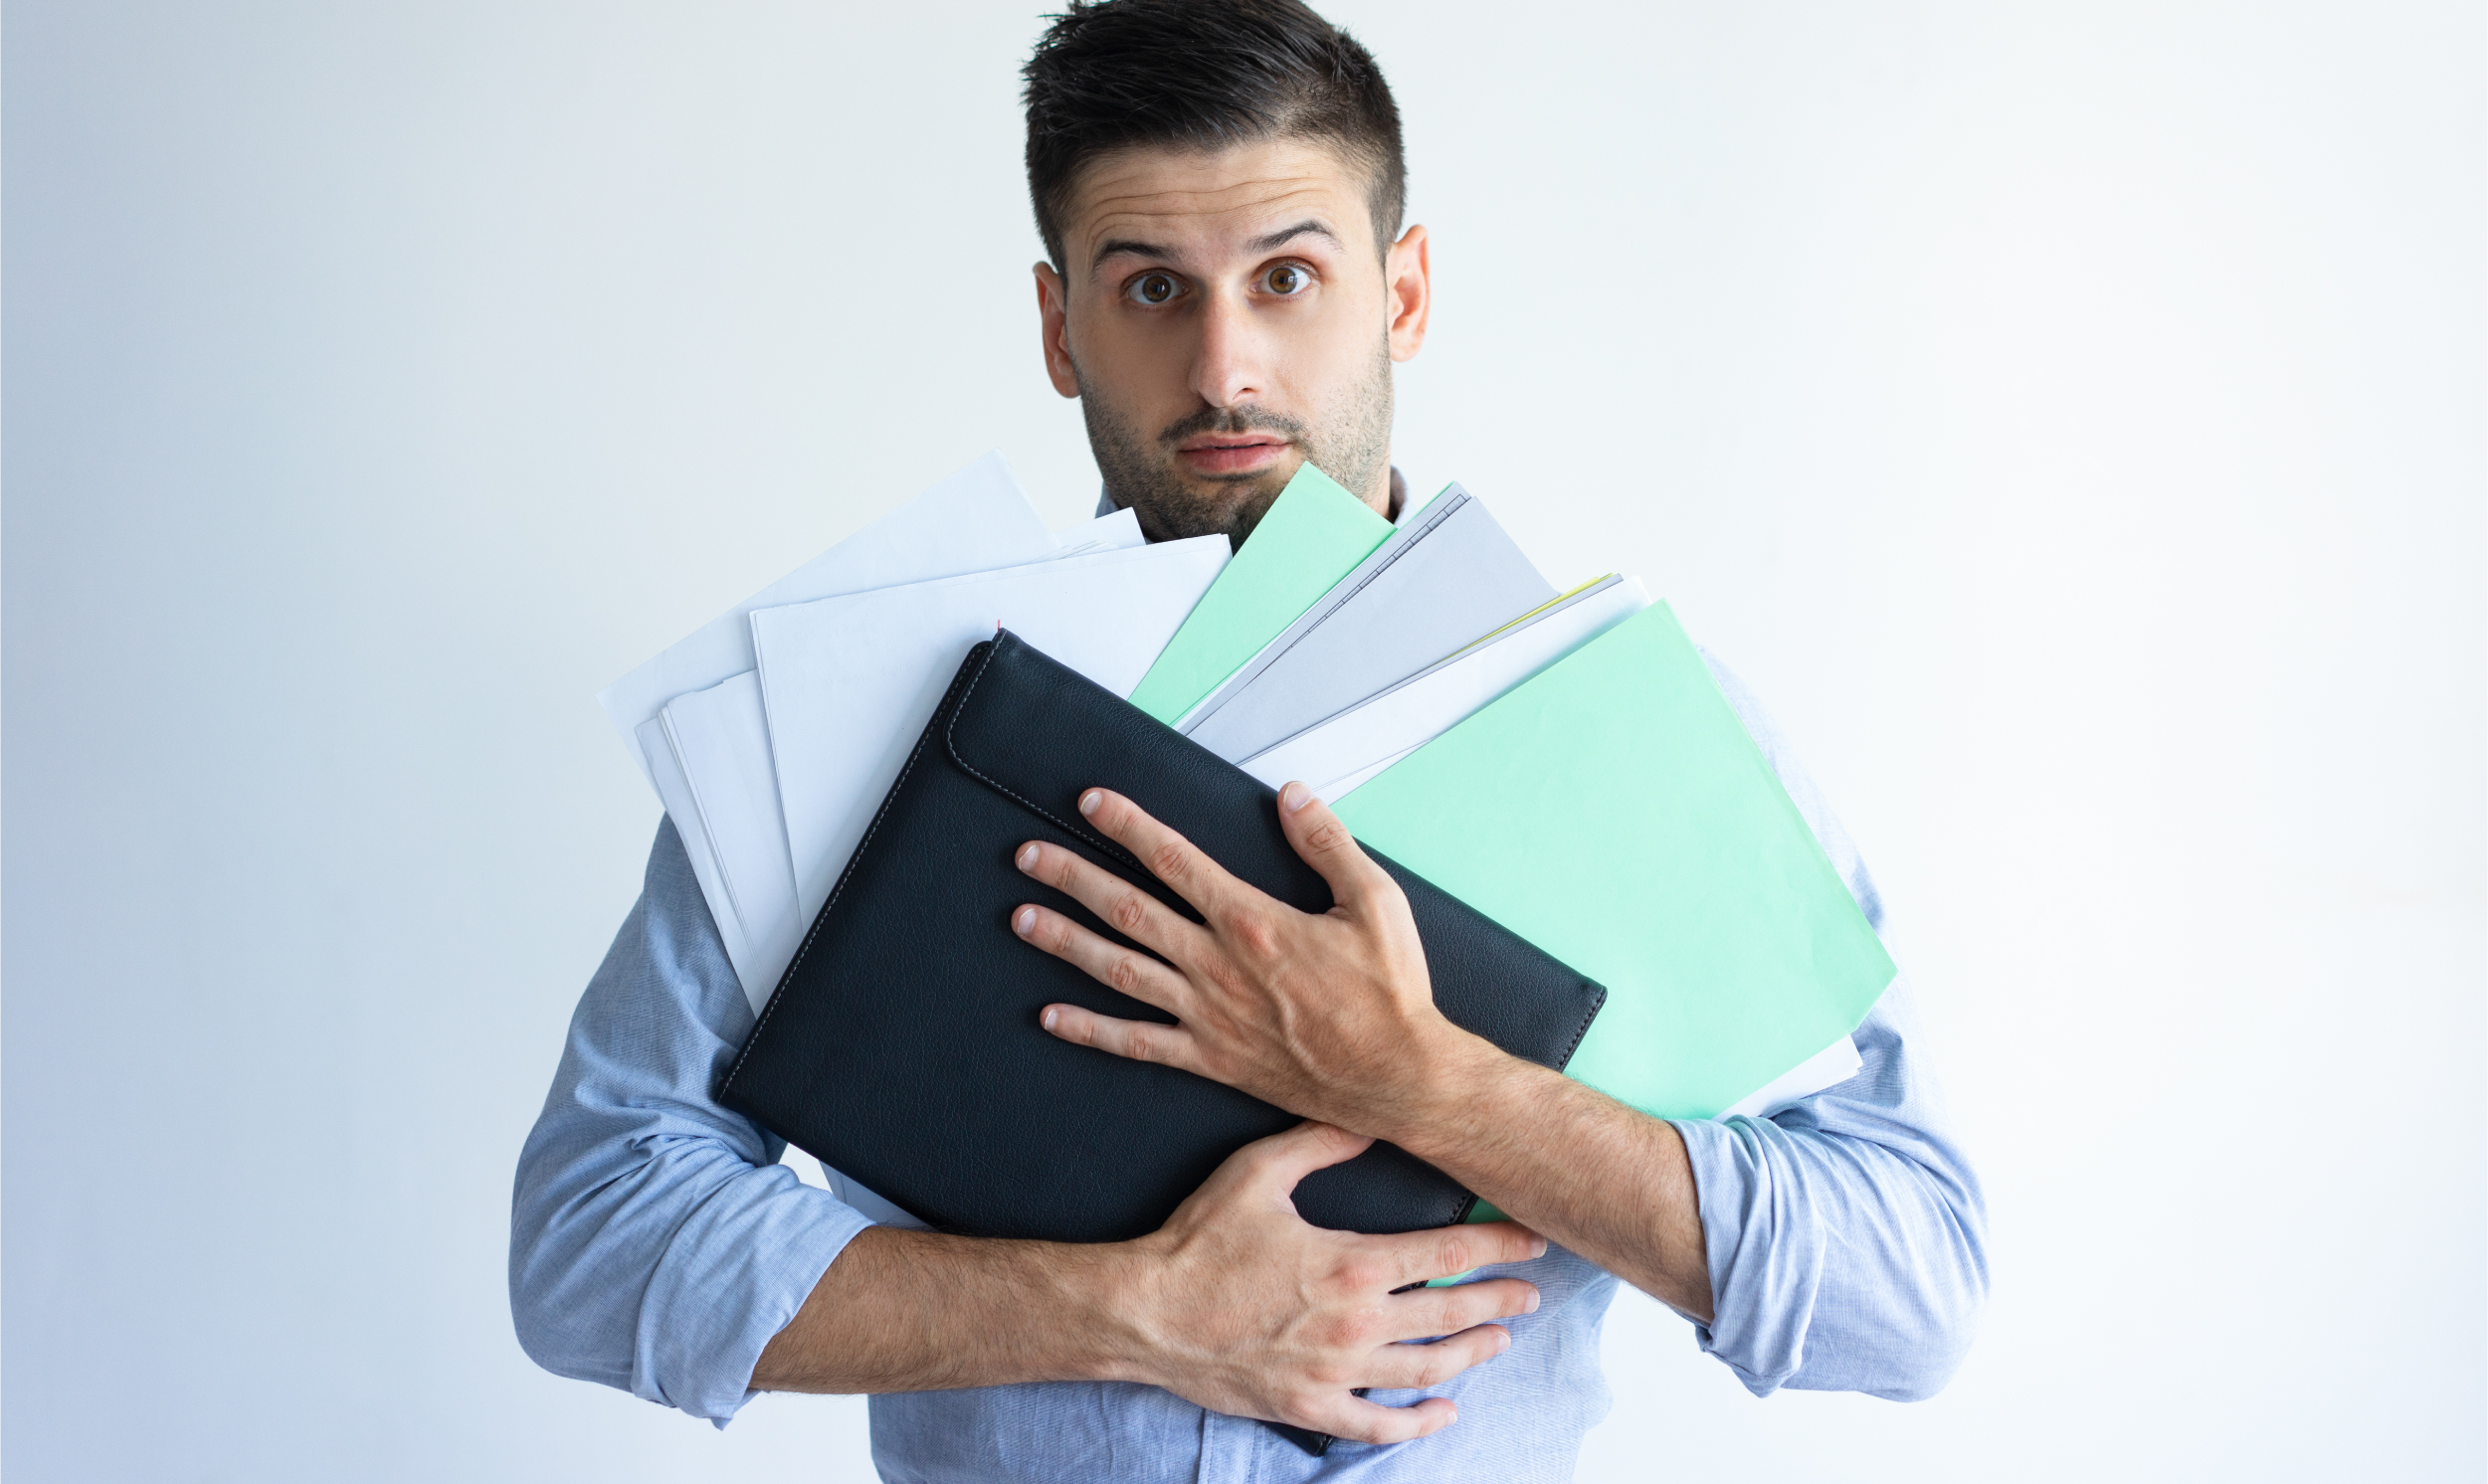 puzzled-office-worker-holding-pile-documents-32